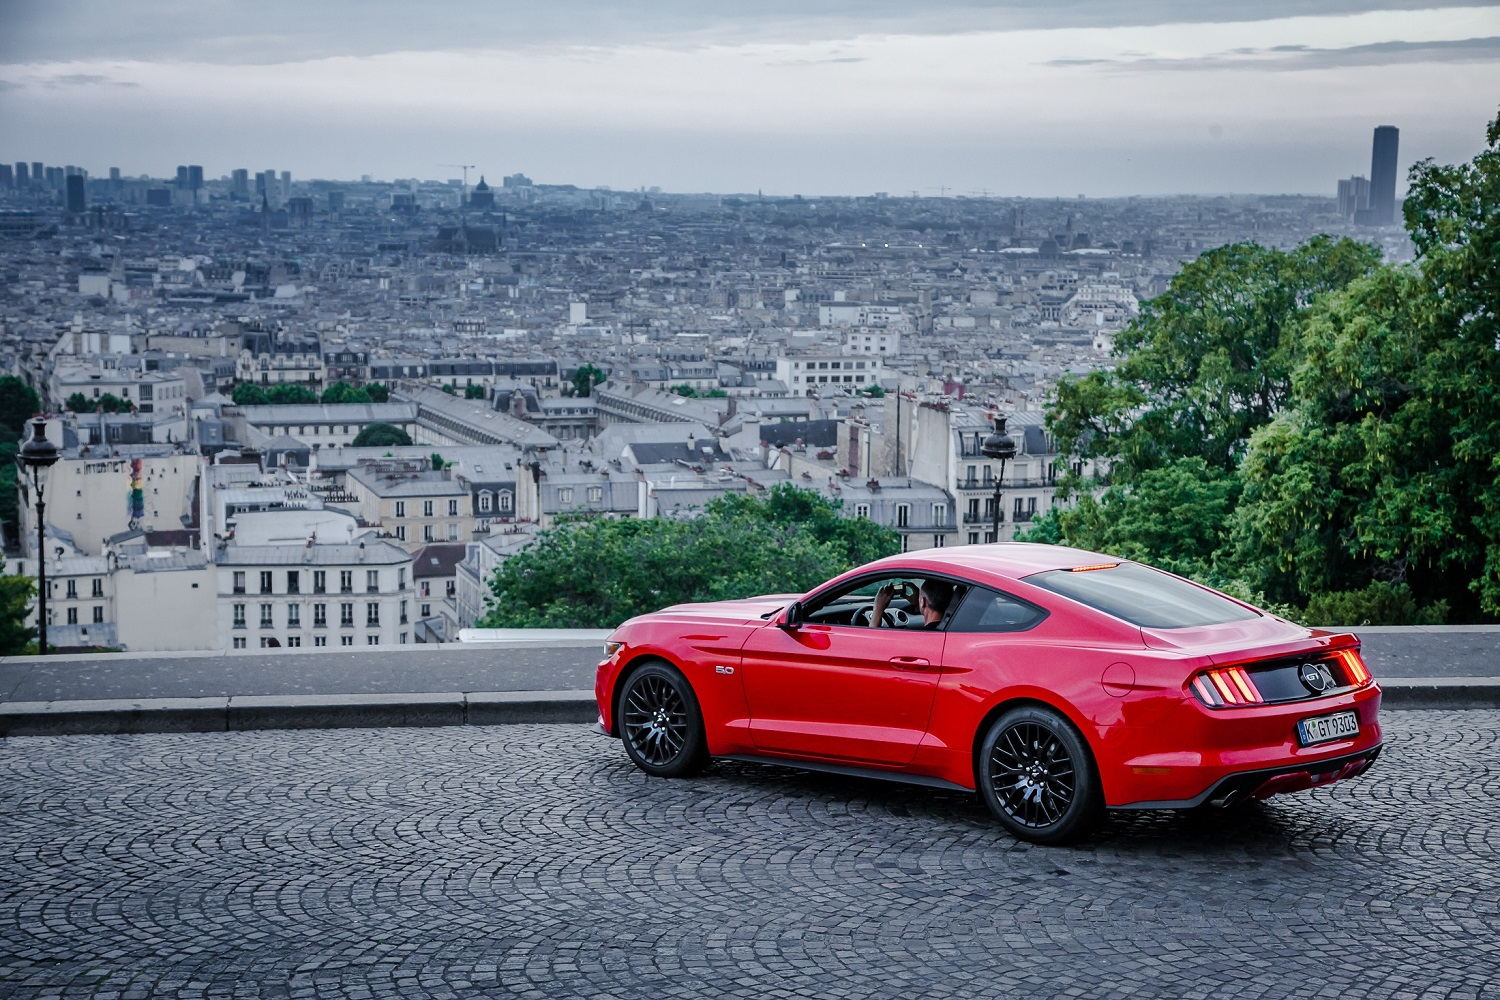 Mustang 2BDeauville France2 Η Ford Mustang πρώτη σε ταξινομήσεις στην κατηγορία sports coupe σε όλο τον κόσμο Bestseller, COUPE, Ford, Ford Mustang, Muscle cars